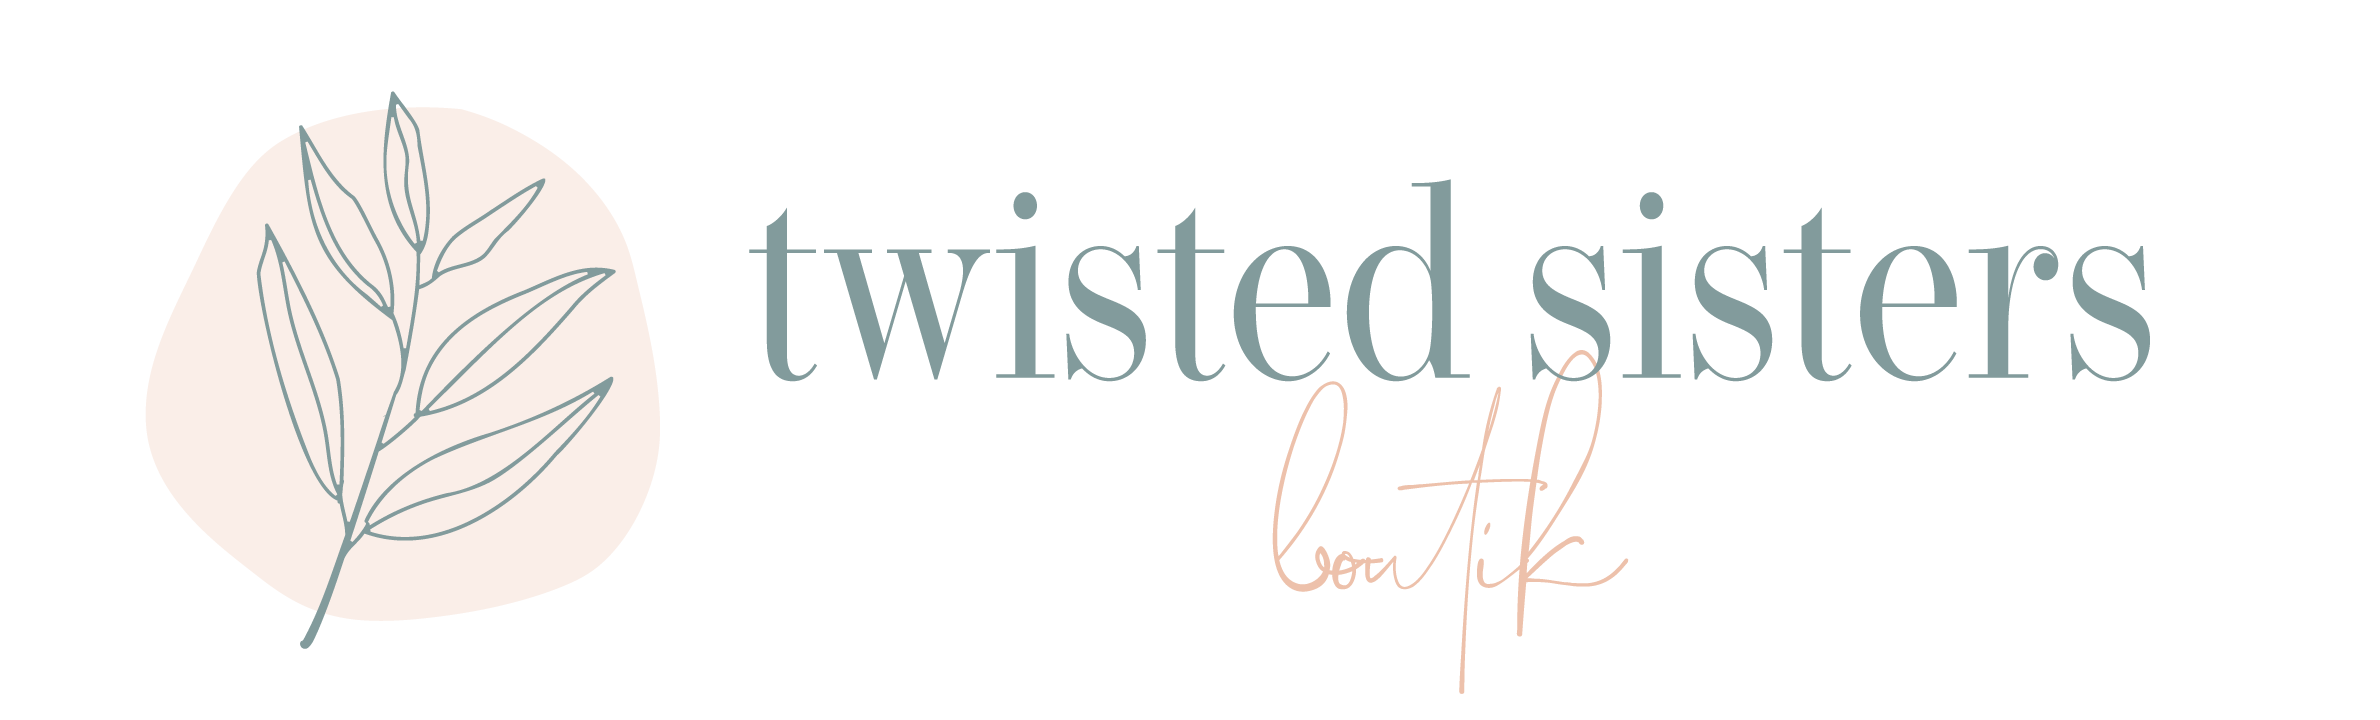 Twisted Sisters Boutik Inc.